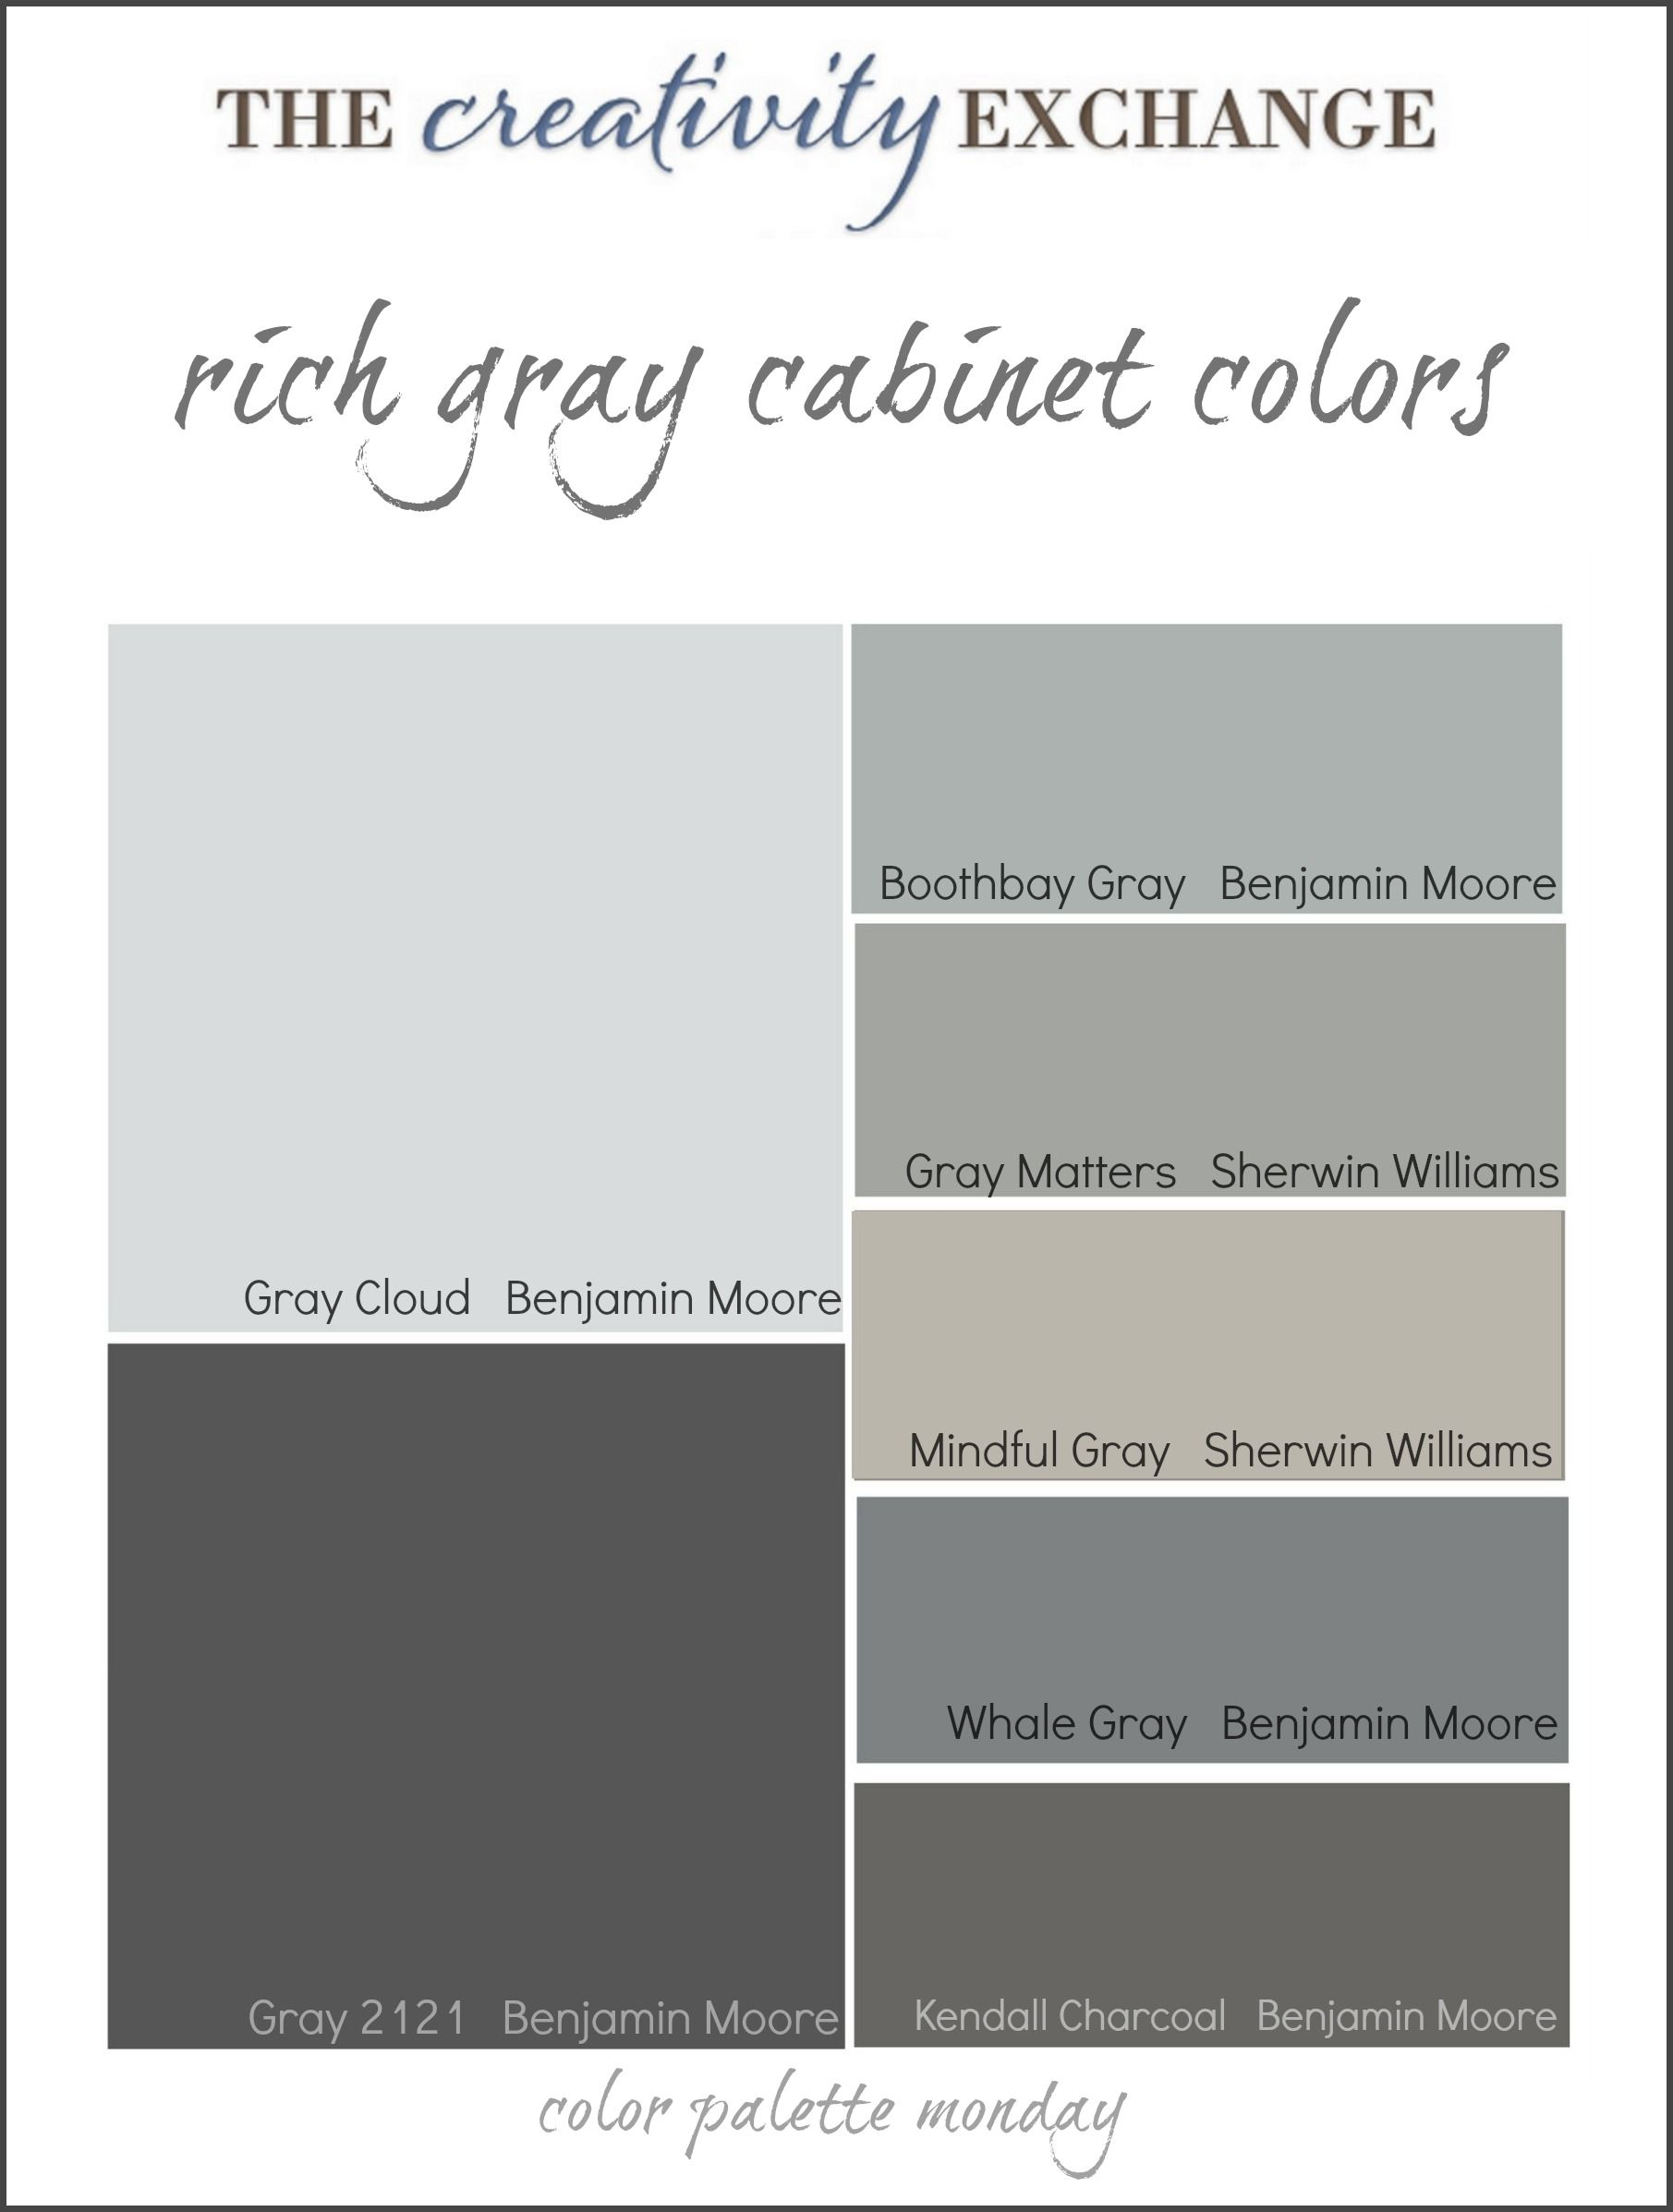 Especially liking mindful gray and kendall charcoal from readers favorite paint colors color palette monday